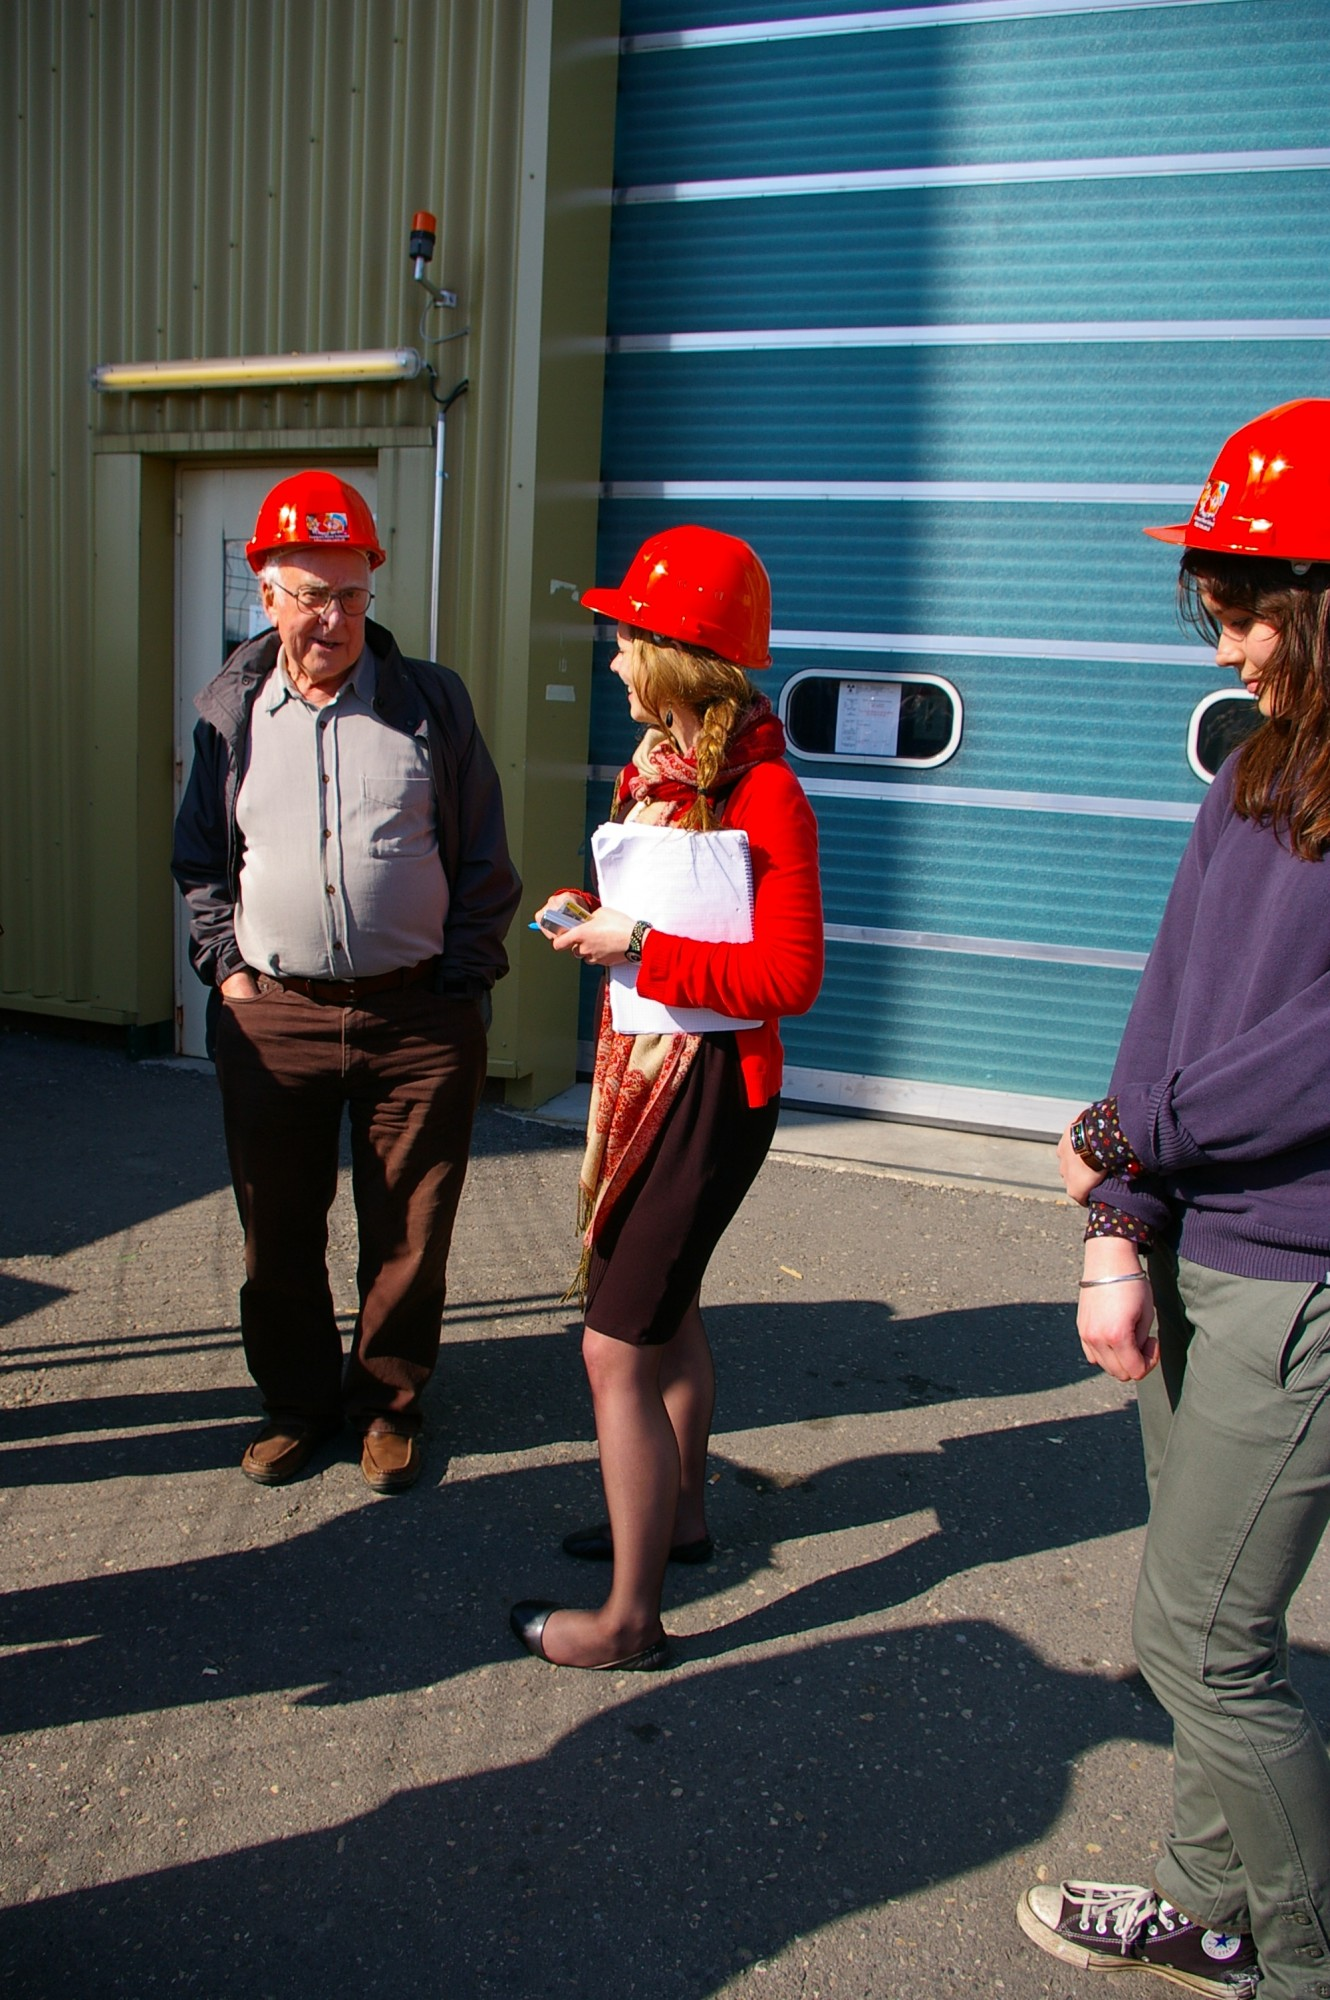 Peter Higgs, Elizabeth Gibney of the CMS collaboration and Jessica Griggs talking after the visit to the CMS construction hall and underground experiment hall. Photograph copyright Alan Walker, University of Edinburgh.